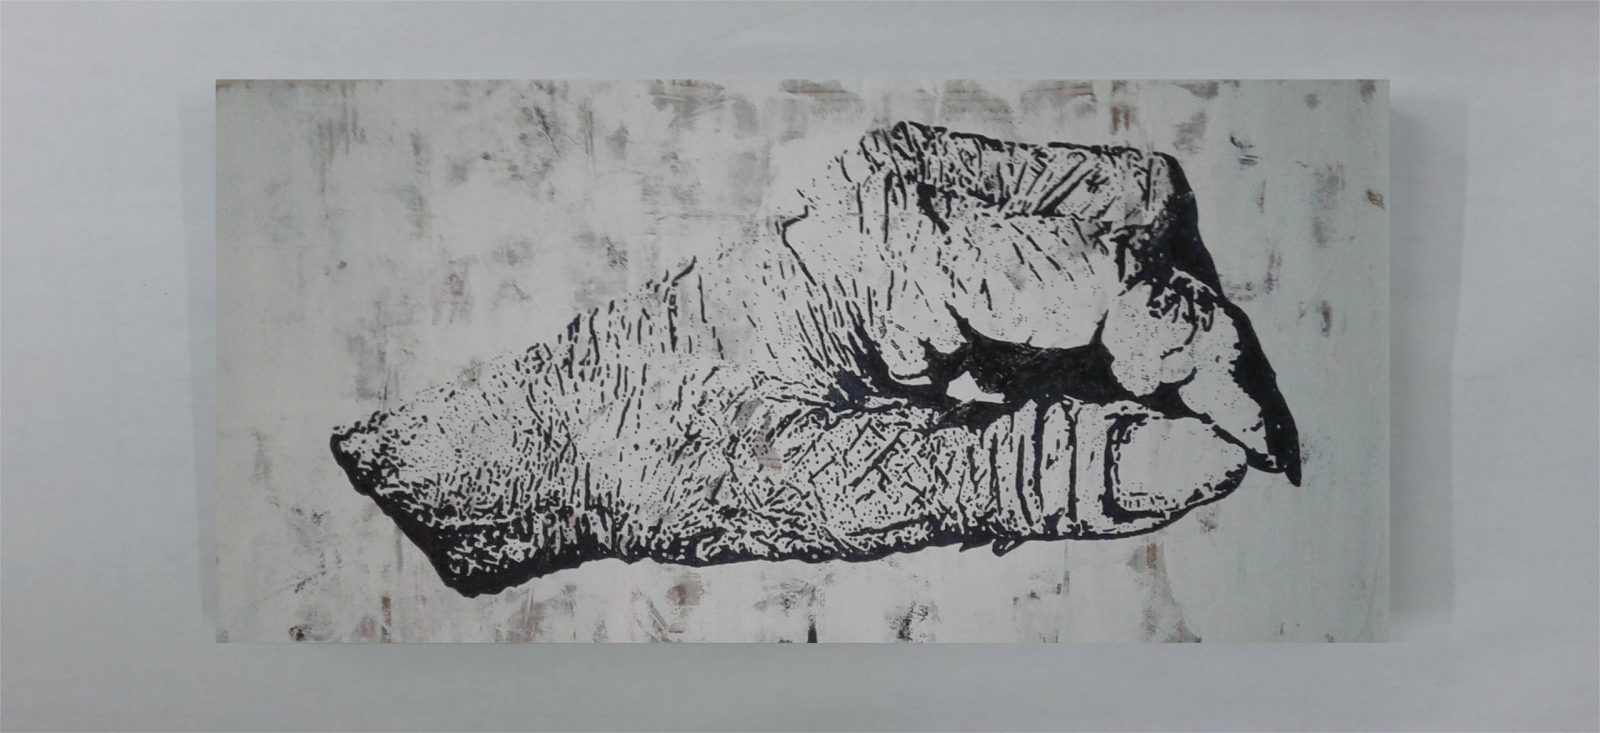 Hand, Nature Morte, Realism, Contemporary Art | Dimensions: 100 x 200 cm. | Technique: Mixed Media | Over Painted Collage [Verso]. | Supporting Material: Paper. | Materials: Acrylic Paint | Chinese Ink | Spray Paint | Marker | Tape | Paper.Recto: As seen in the photo aka Work in Progress.Verso: White.